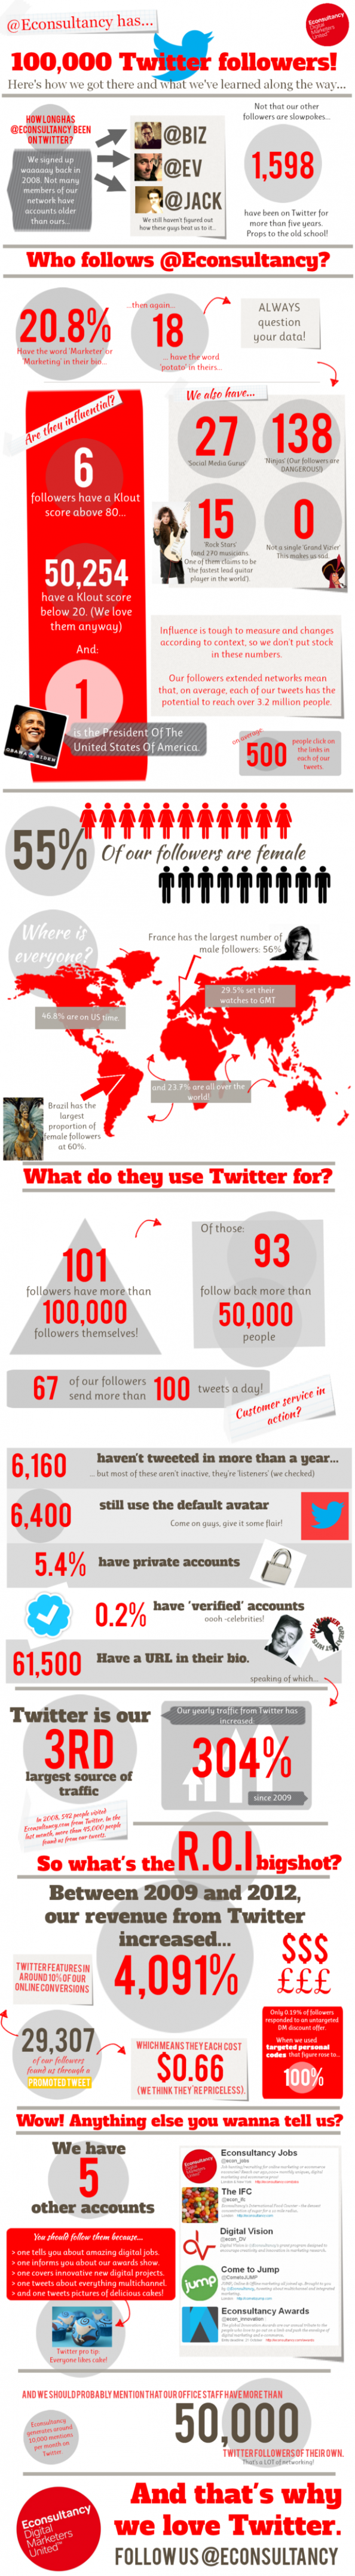 How @Econsultancy got 100,000 Twitter followers  Infographic